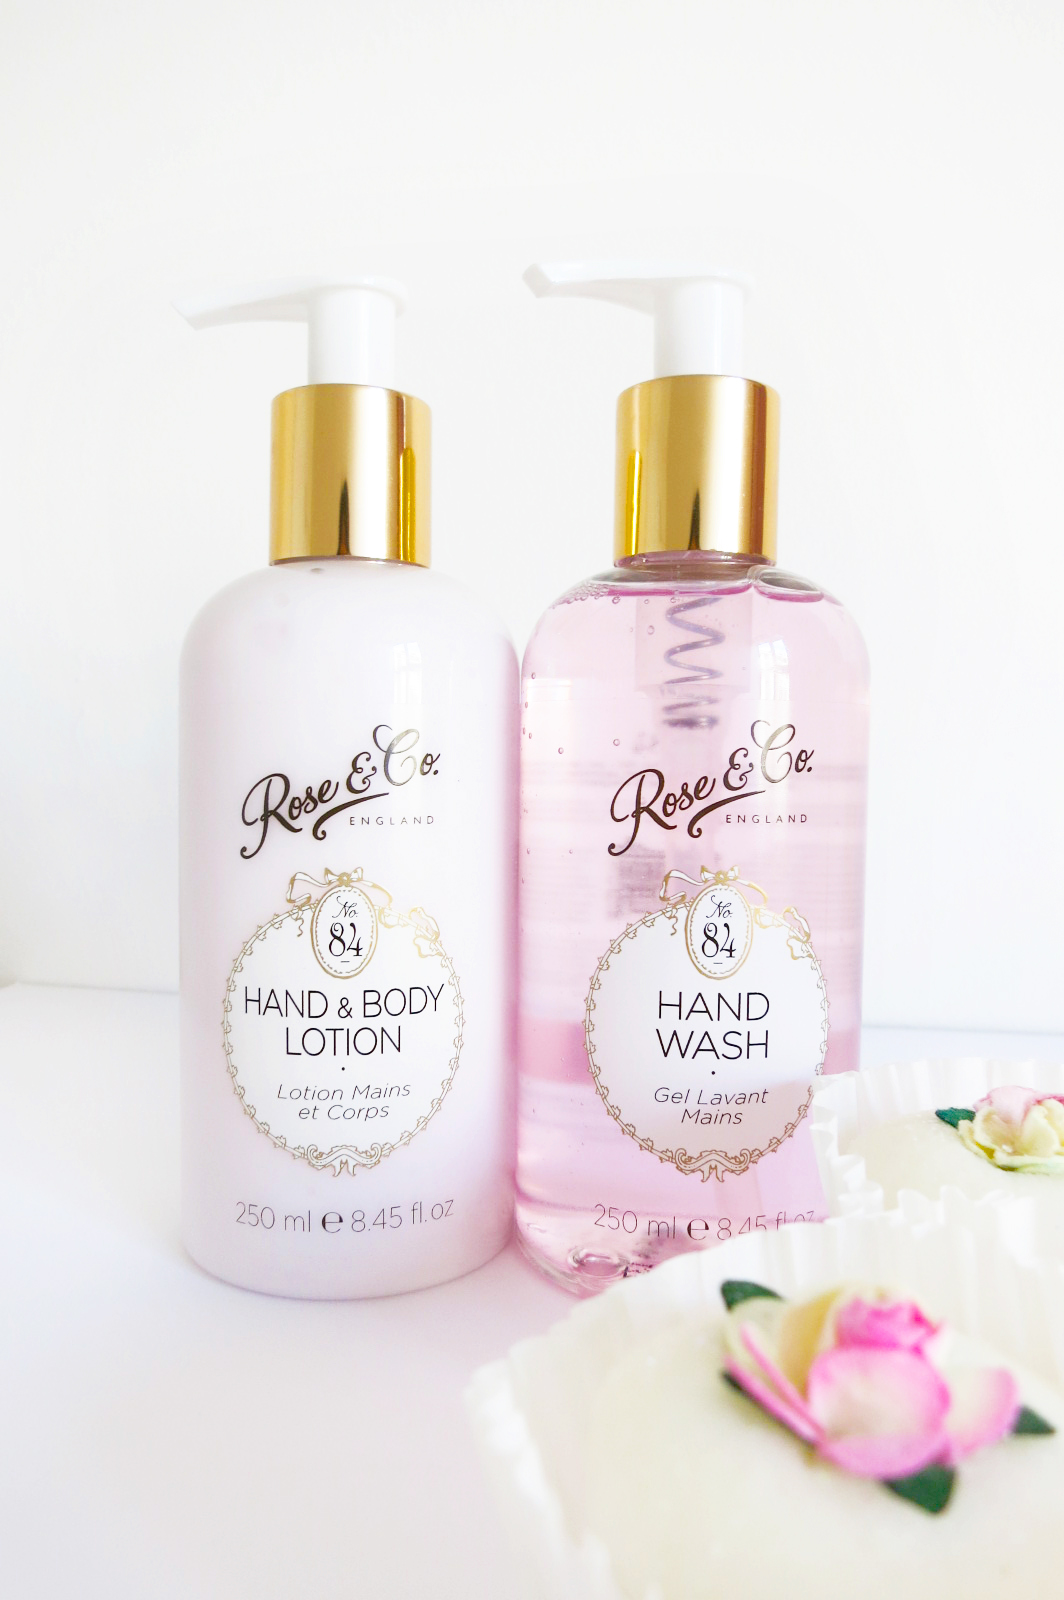 rose&co rose scented beauty products